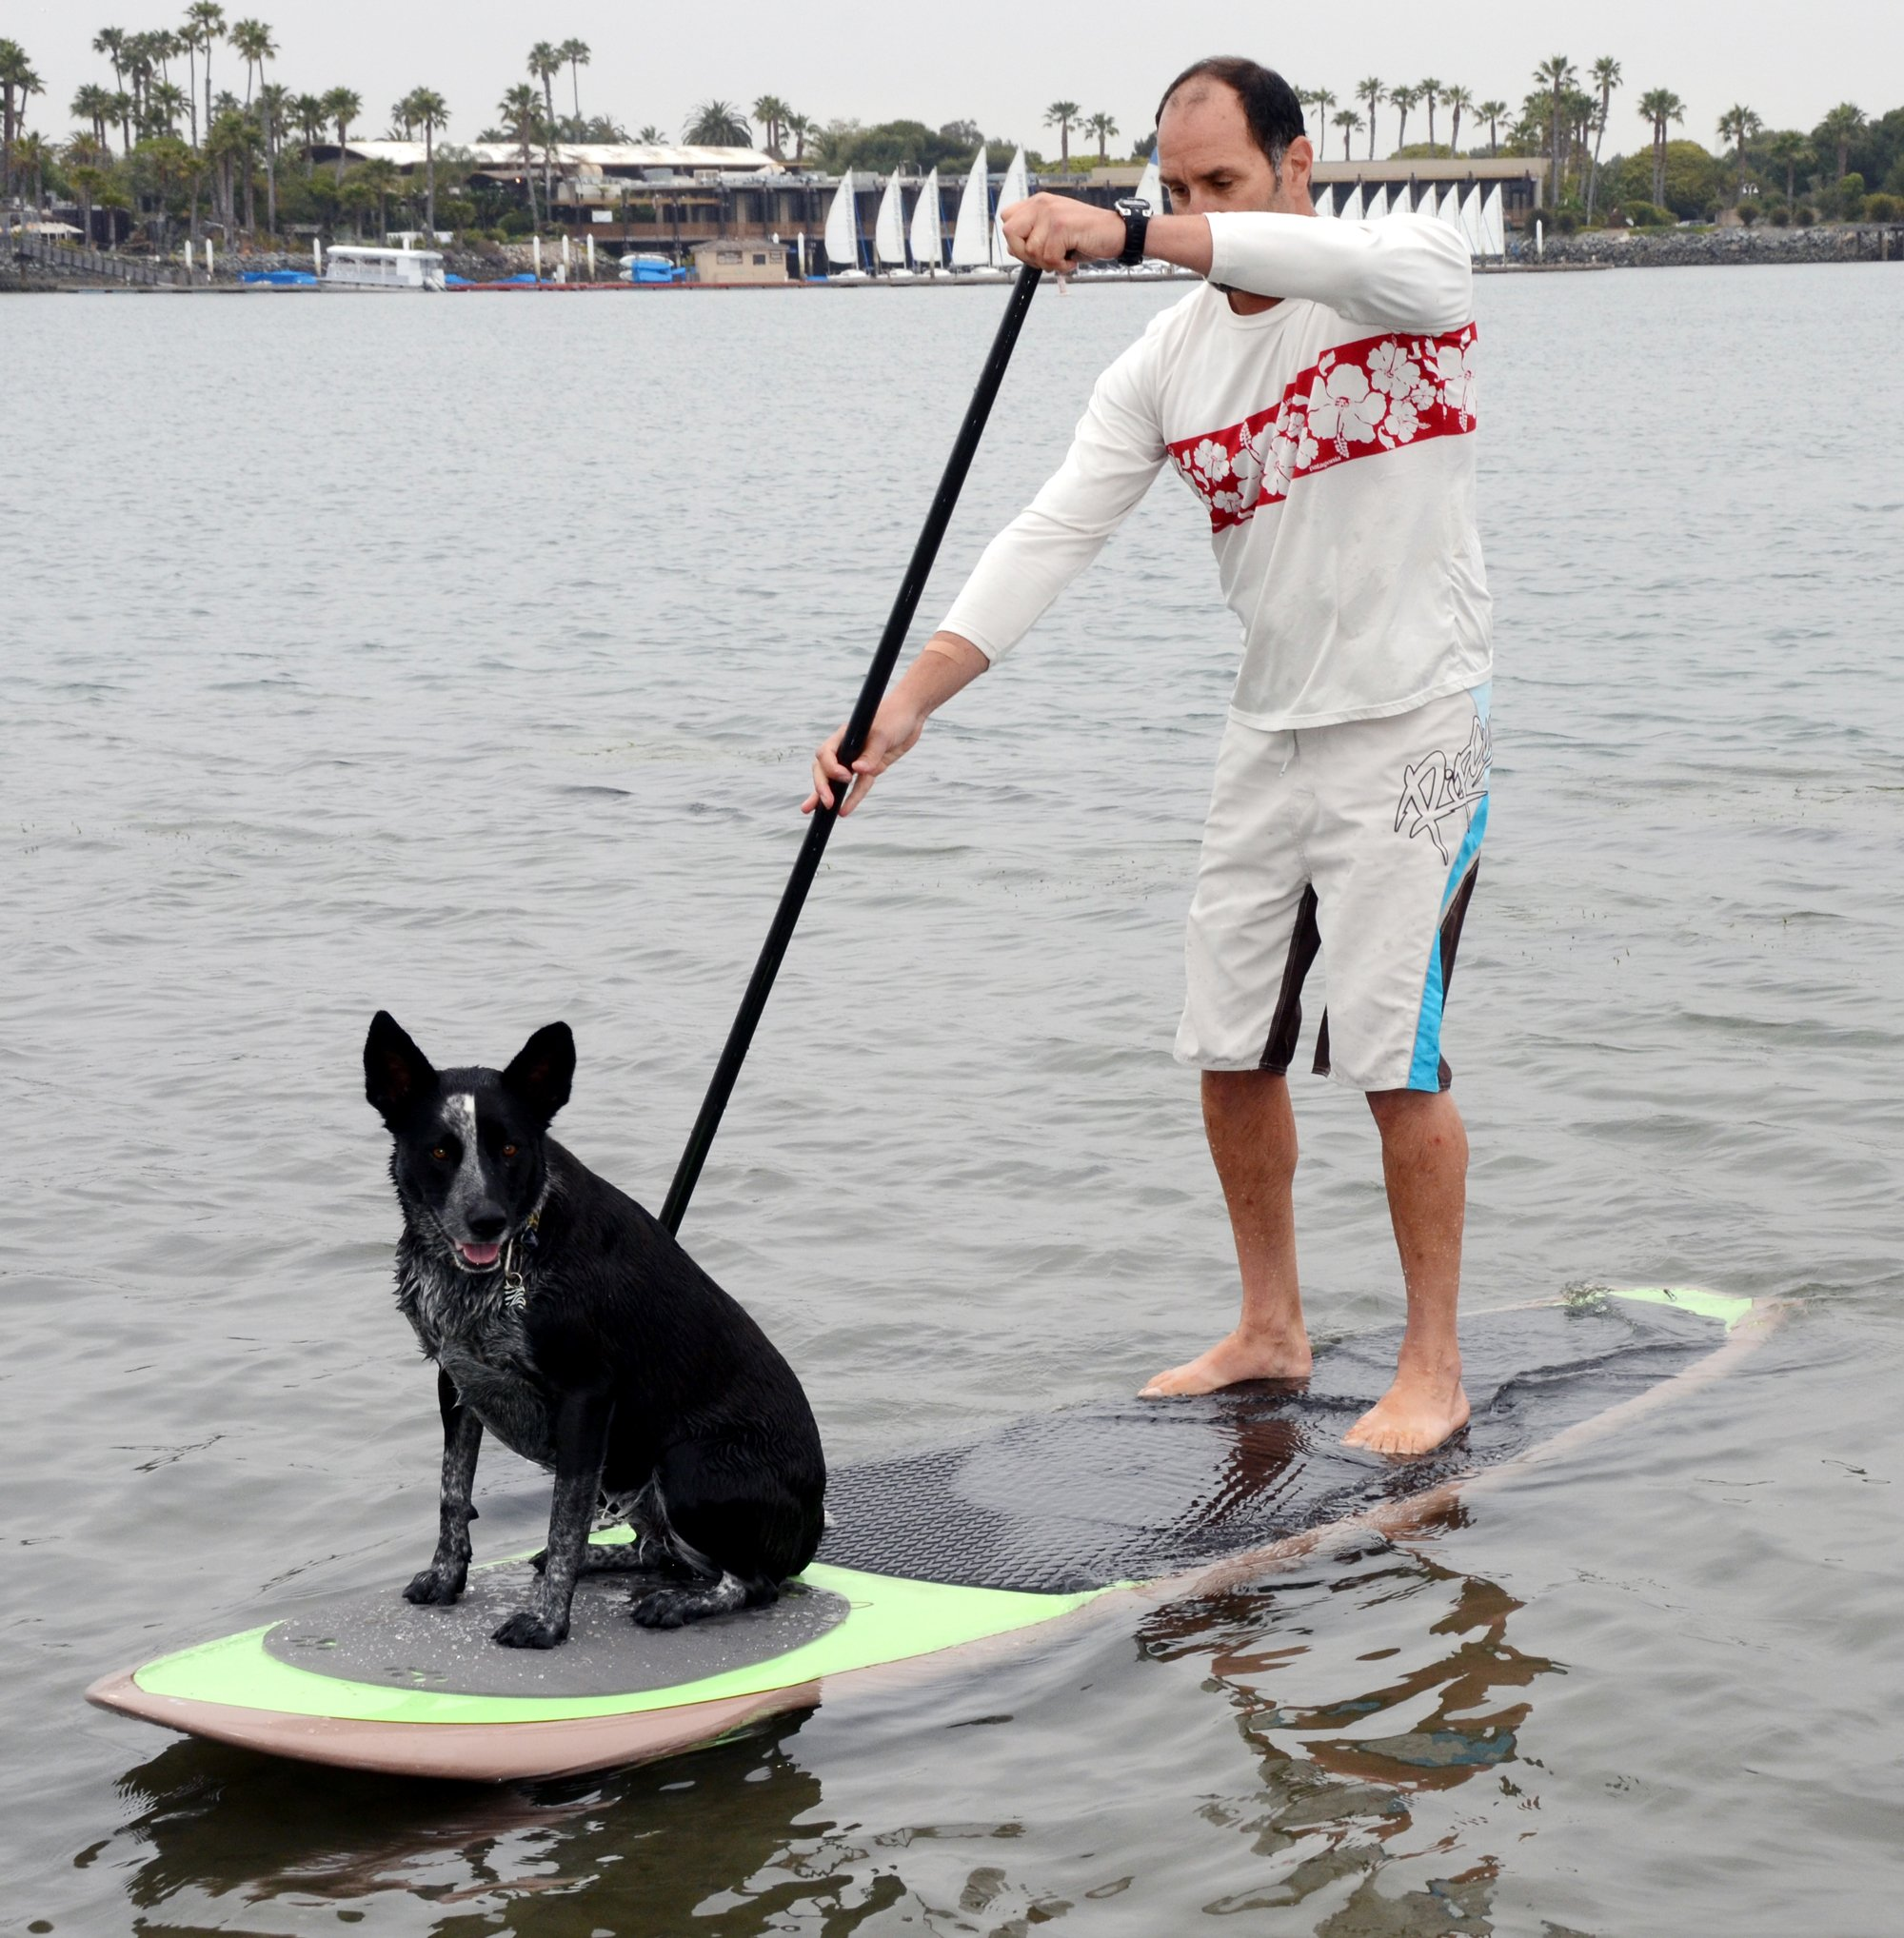 Pup Deck Stand Up Paddle Board Traction Pad For Dogs - Solid Pad